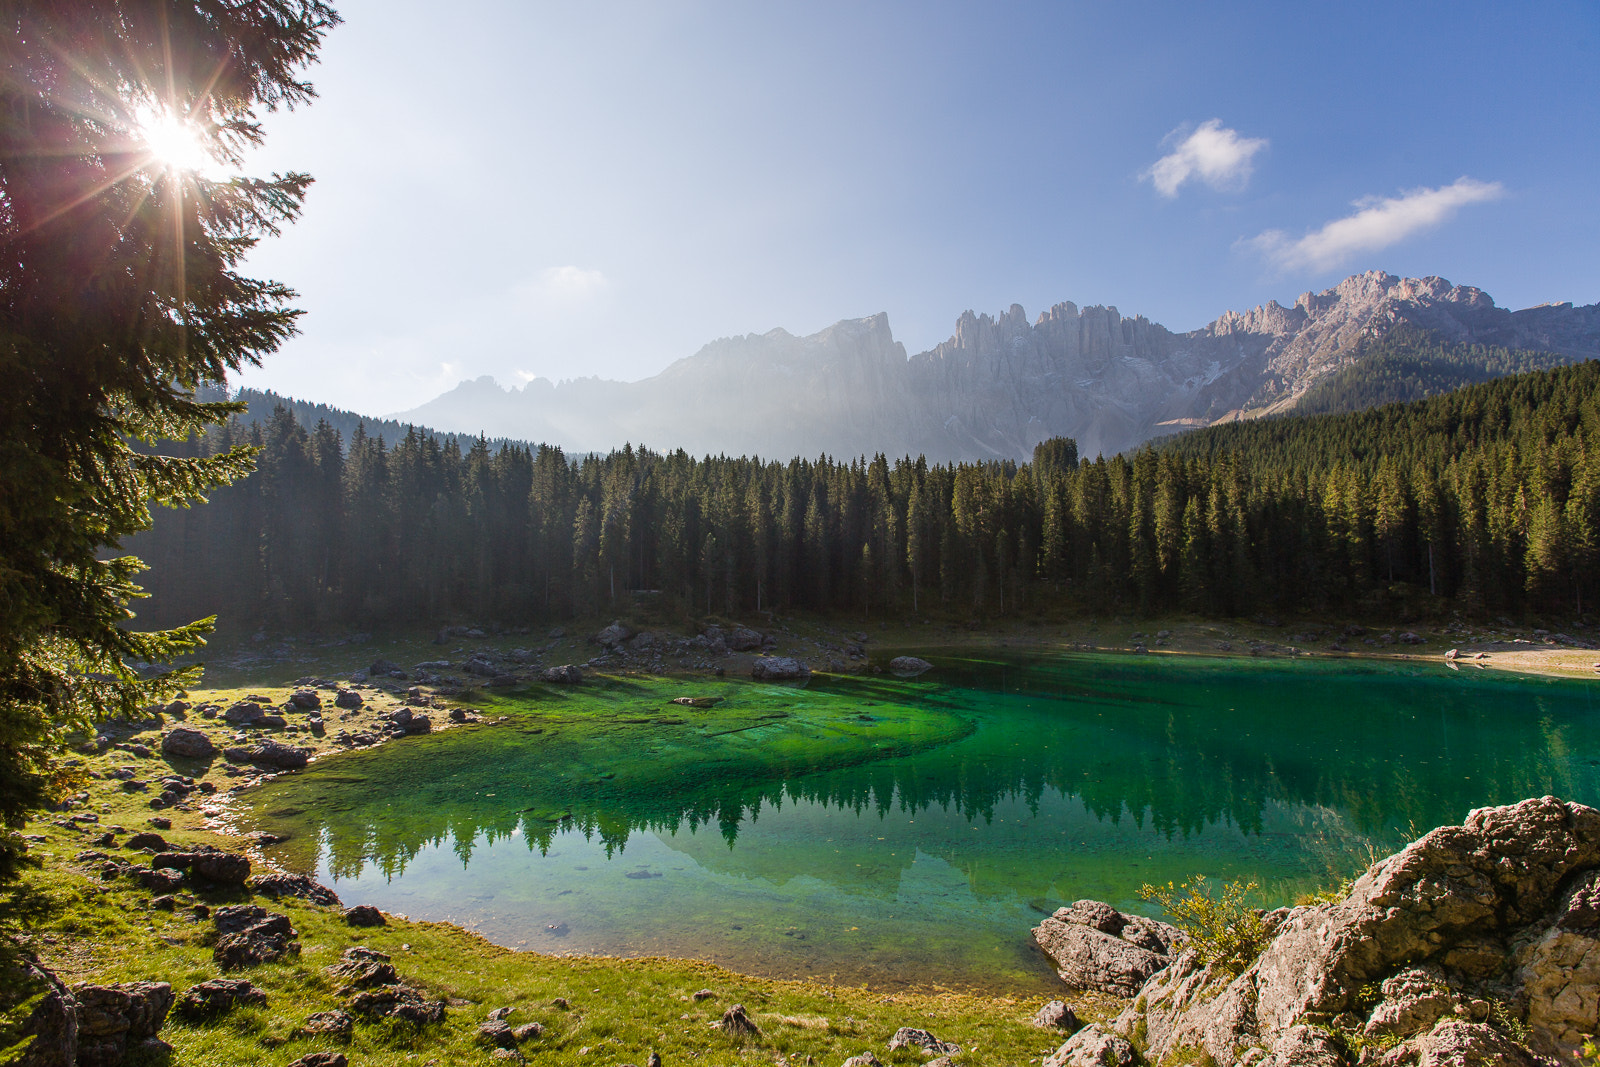 Photograph Lago di Carezza in morning light by Hans Kruse on 500px